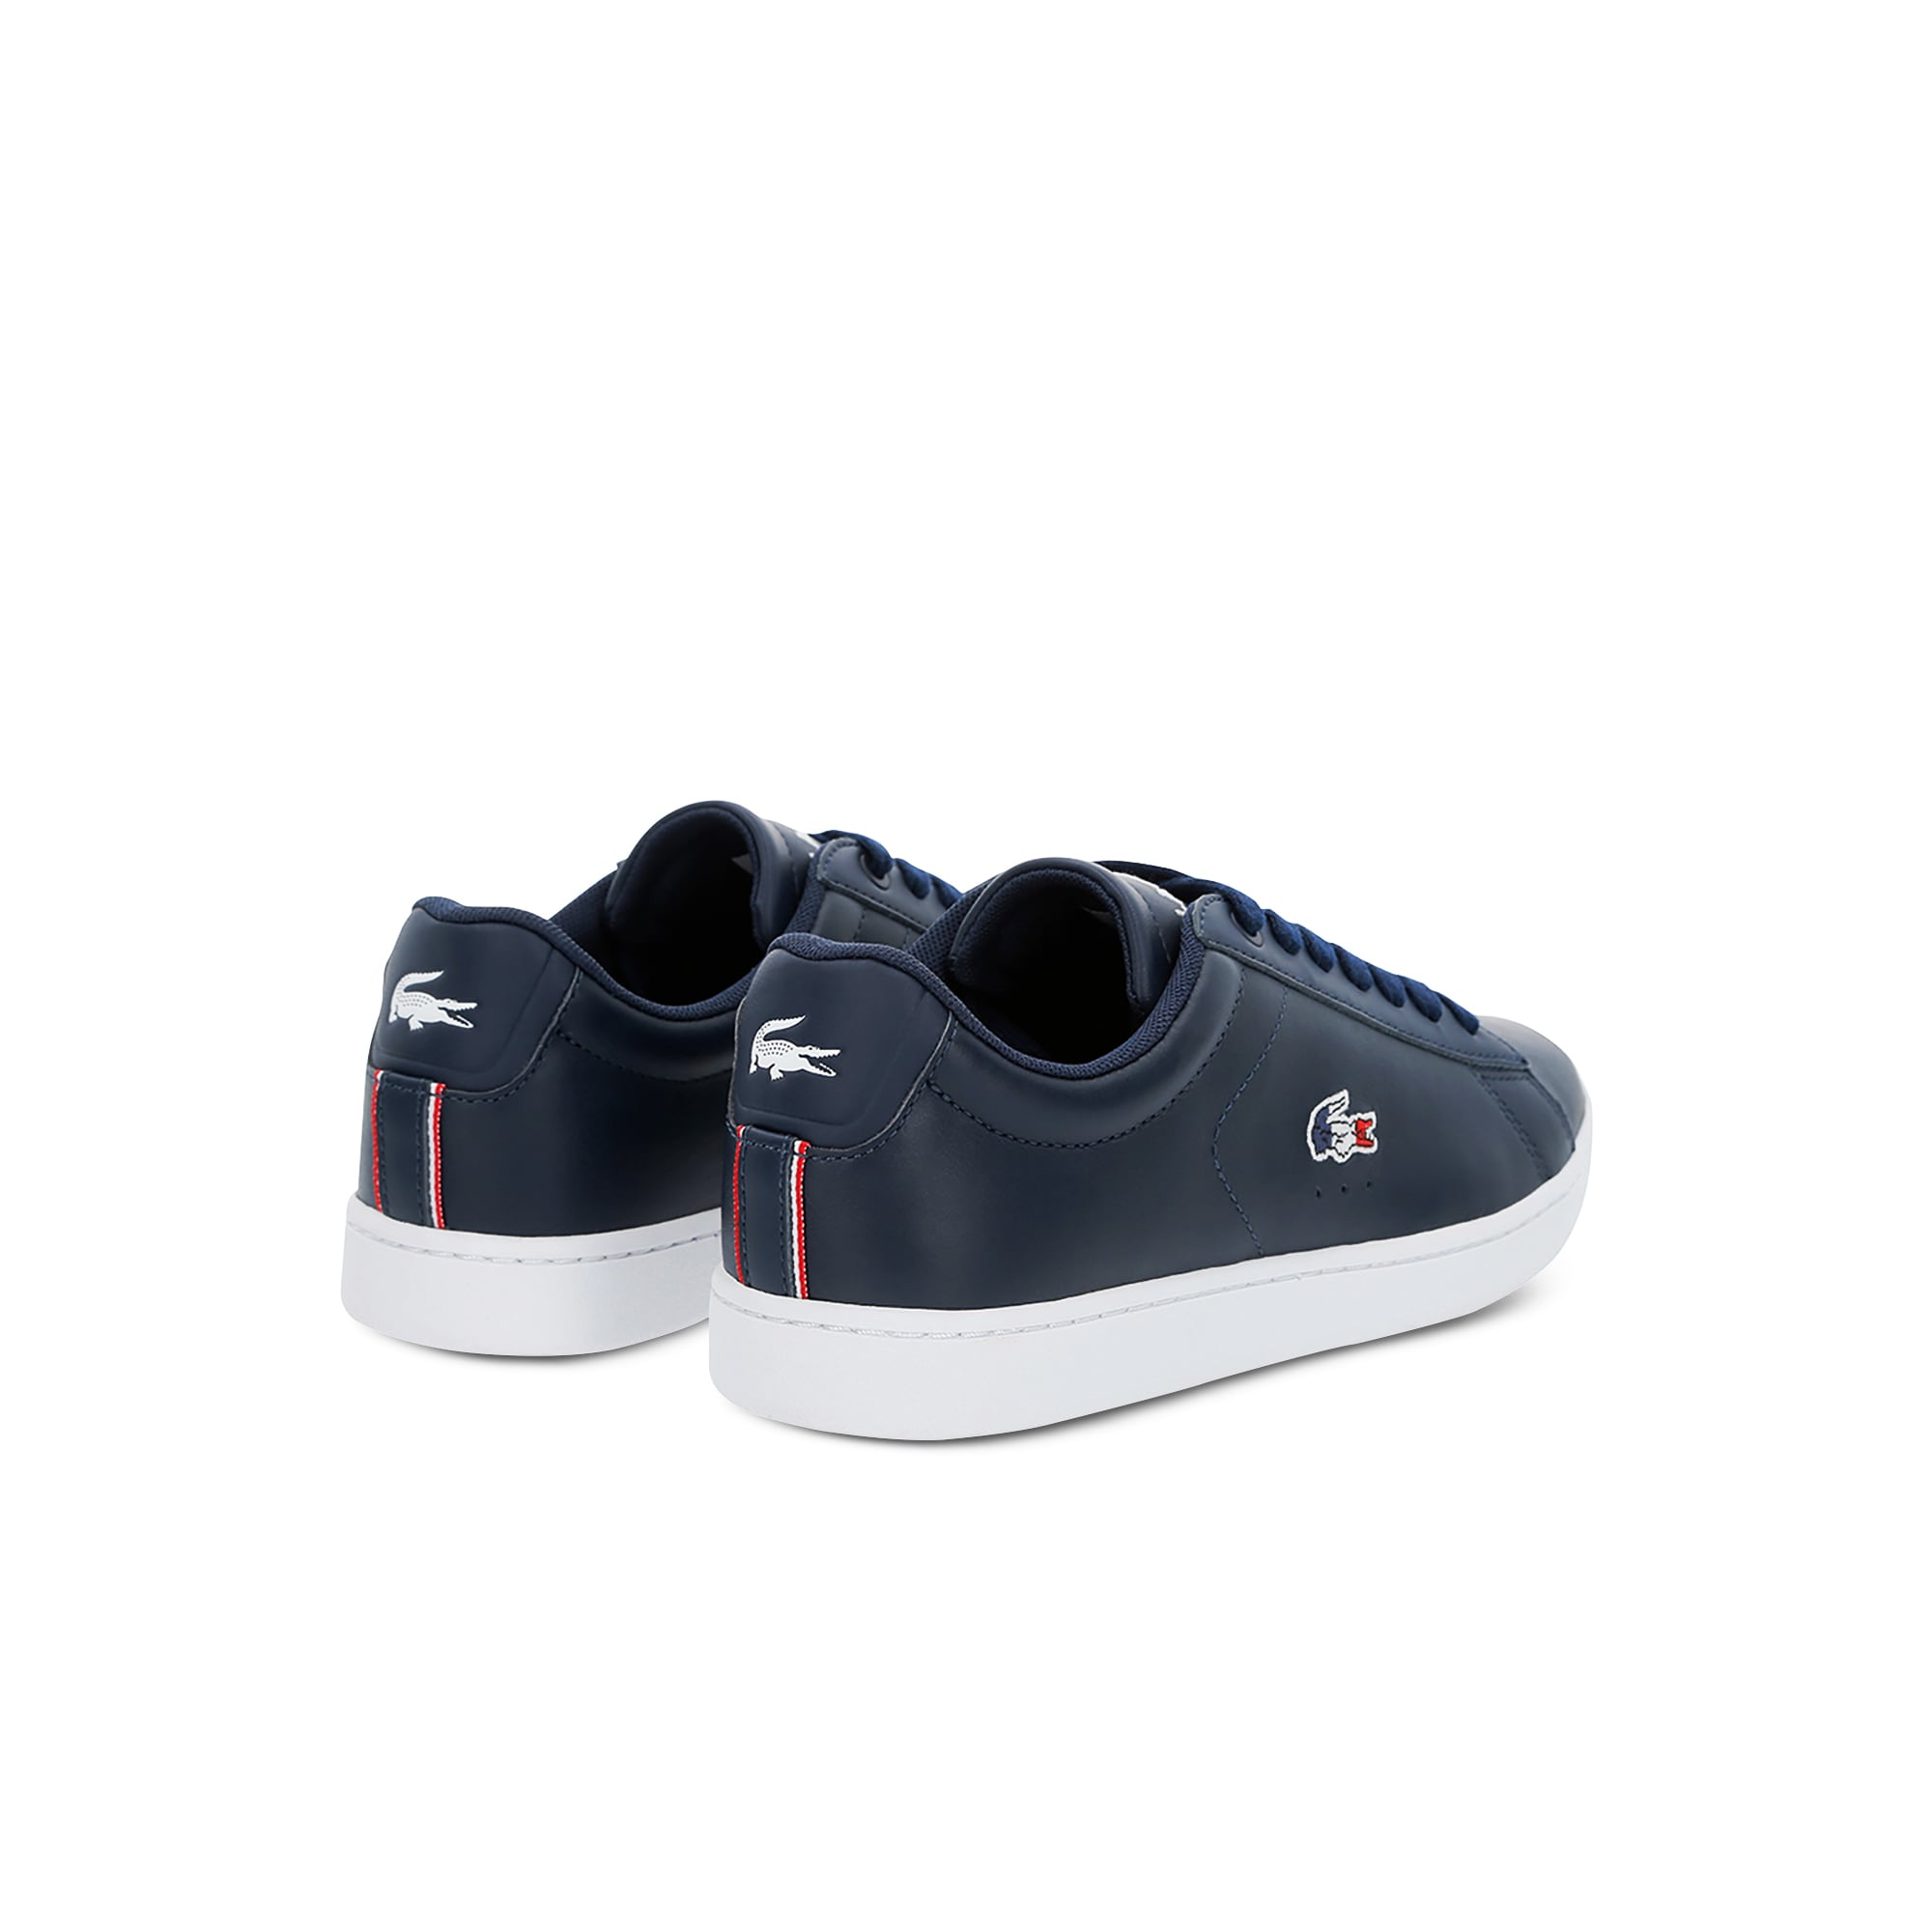 Women's Carnaby Evo Tricolore Leather Trainers